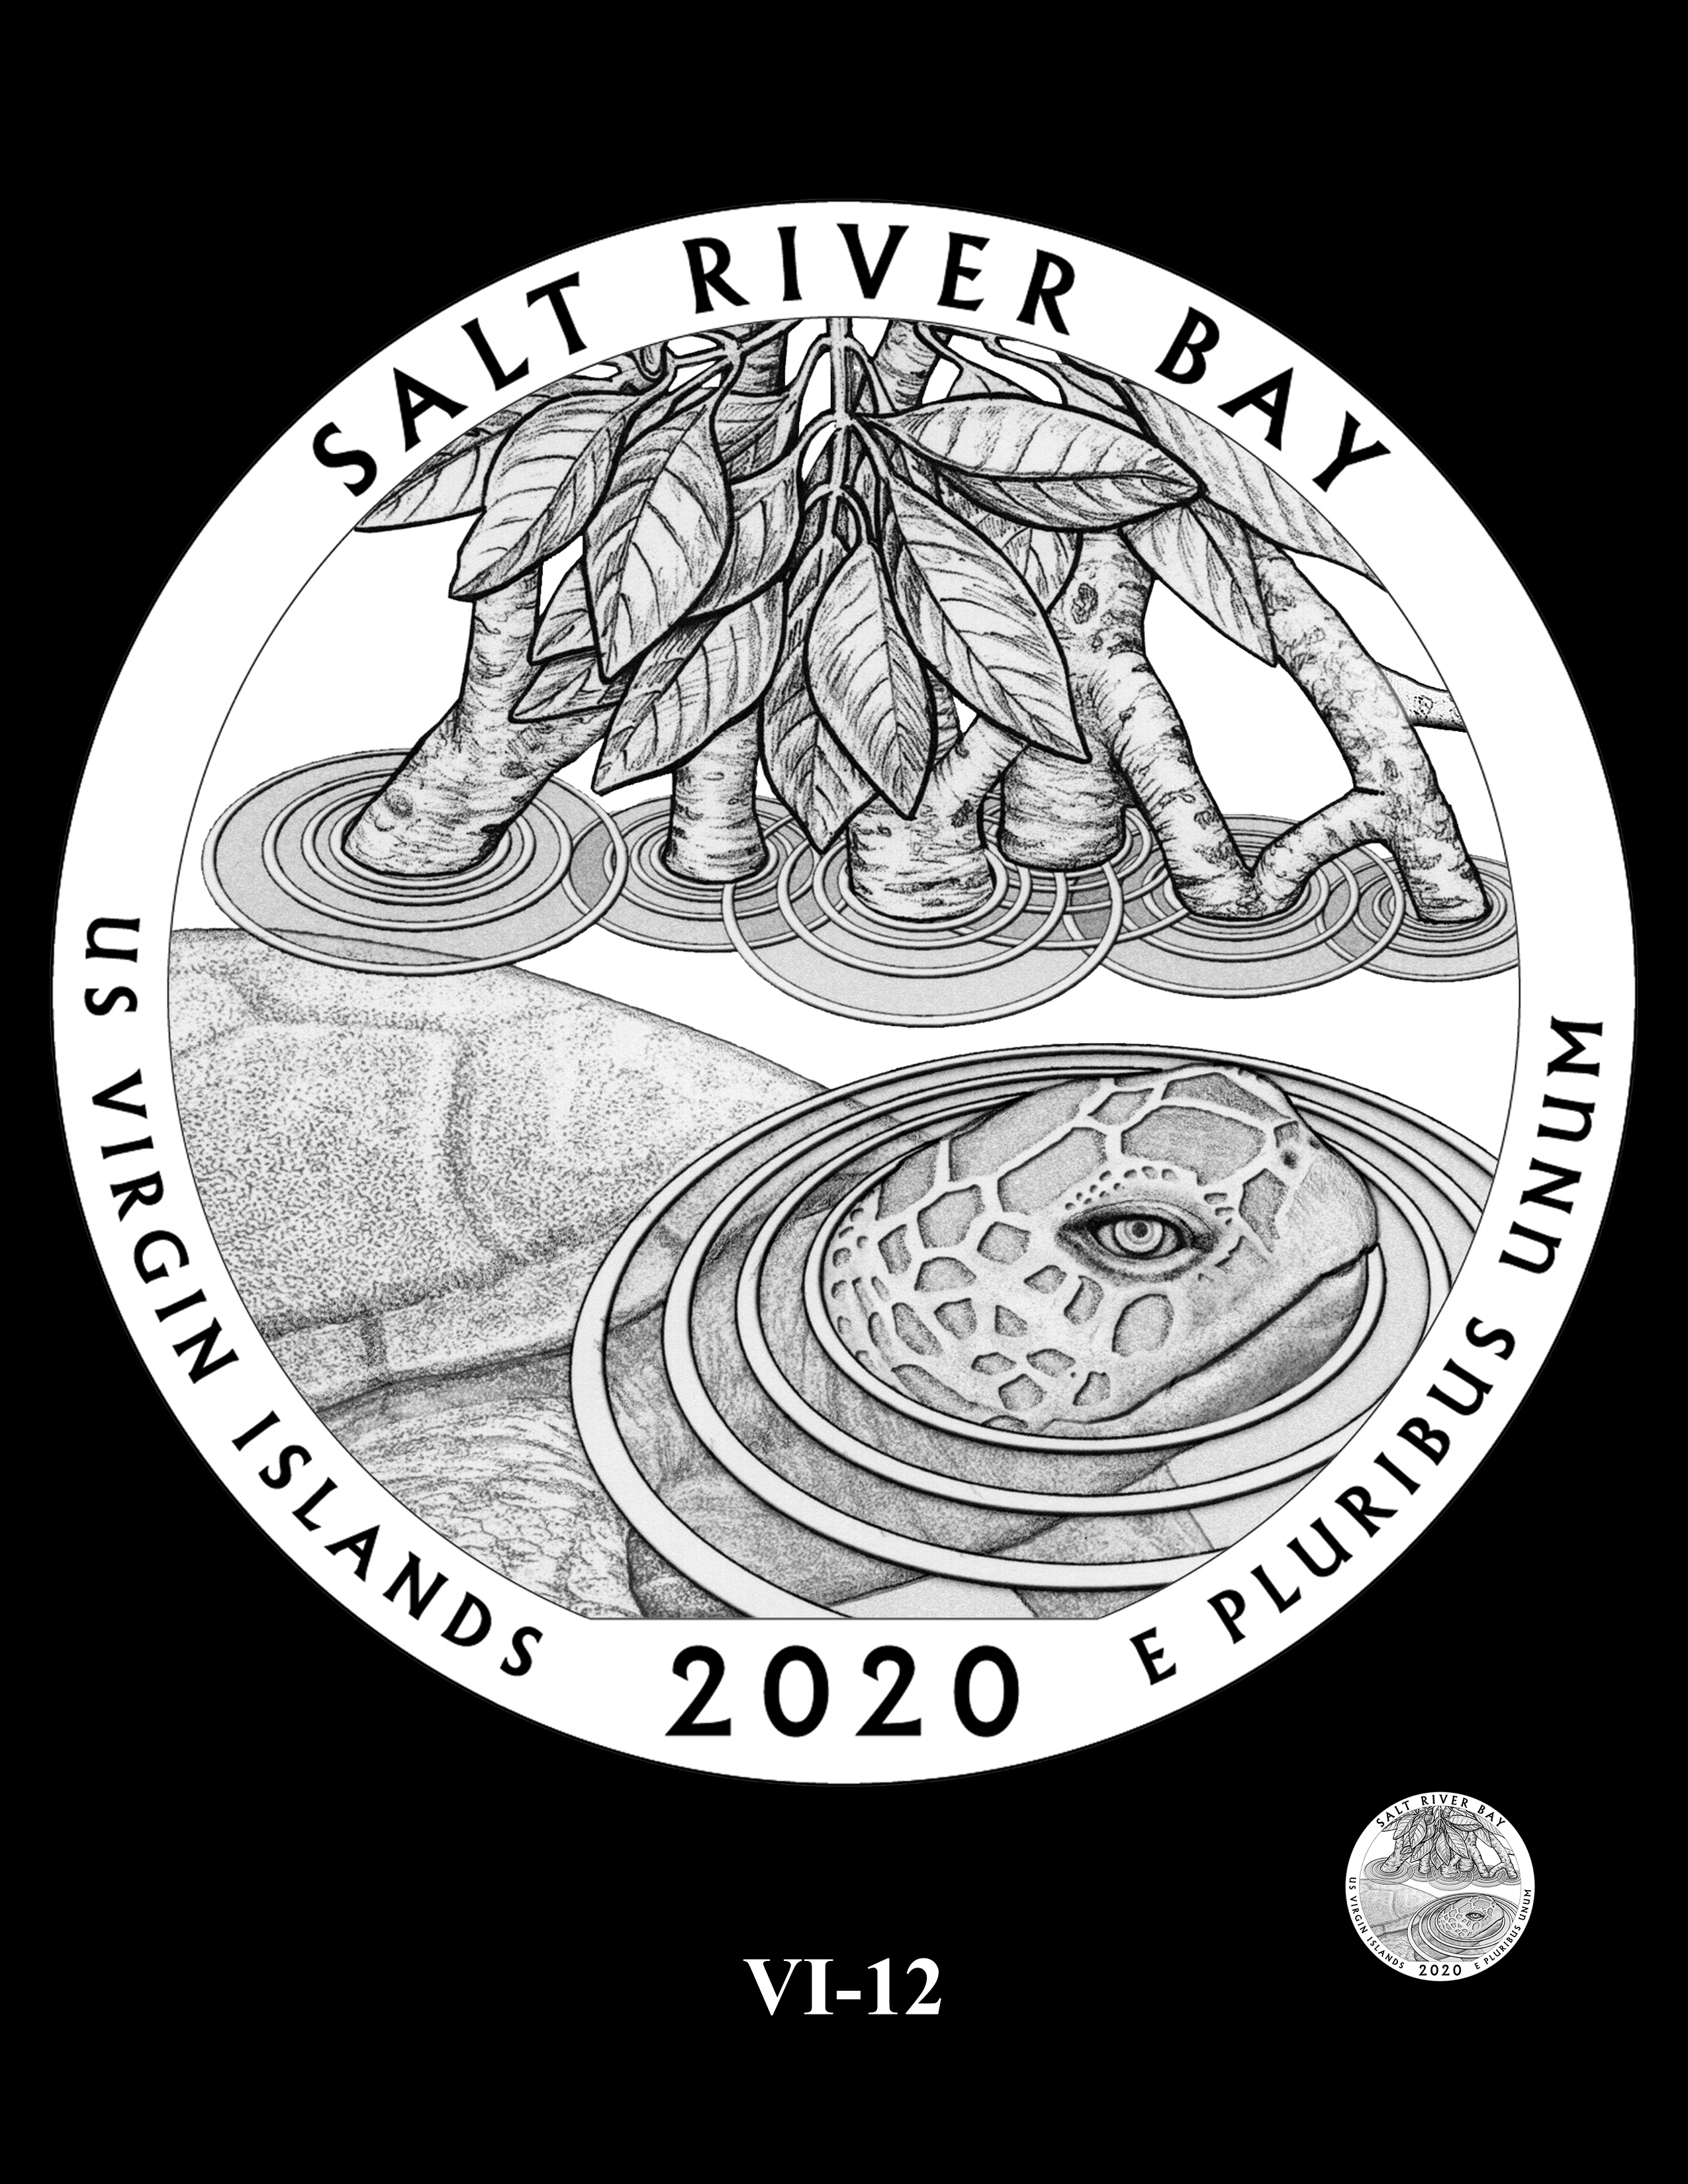 VI-12-- 2020 America the Beautiful Quarters® Program